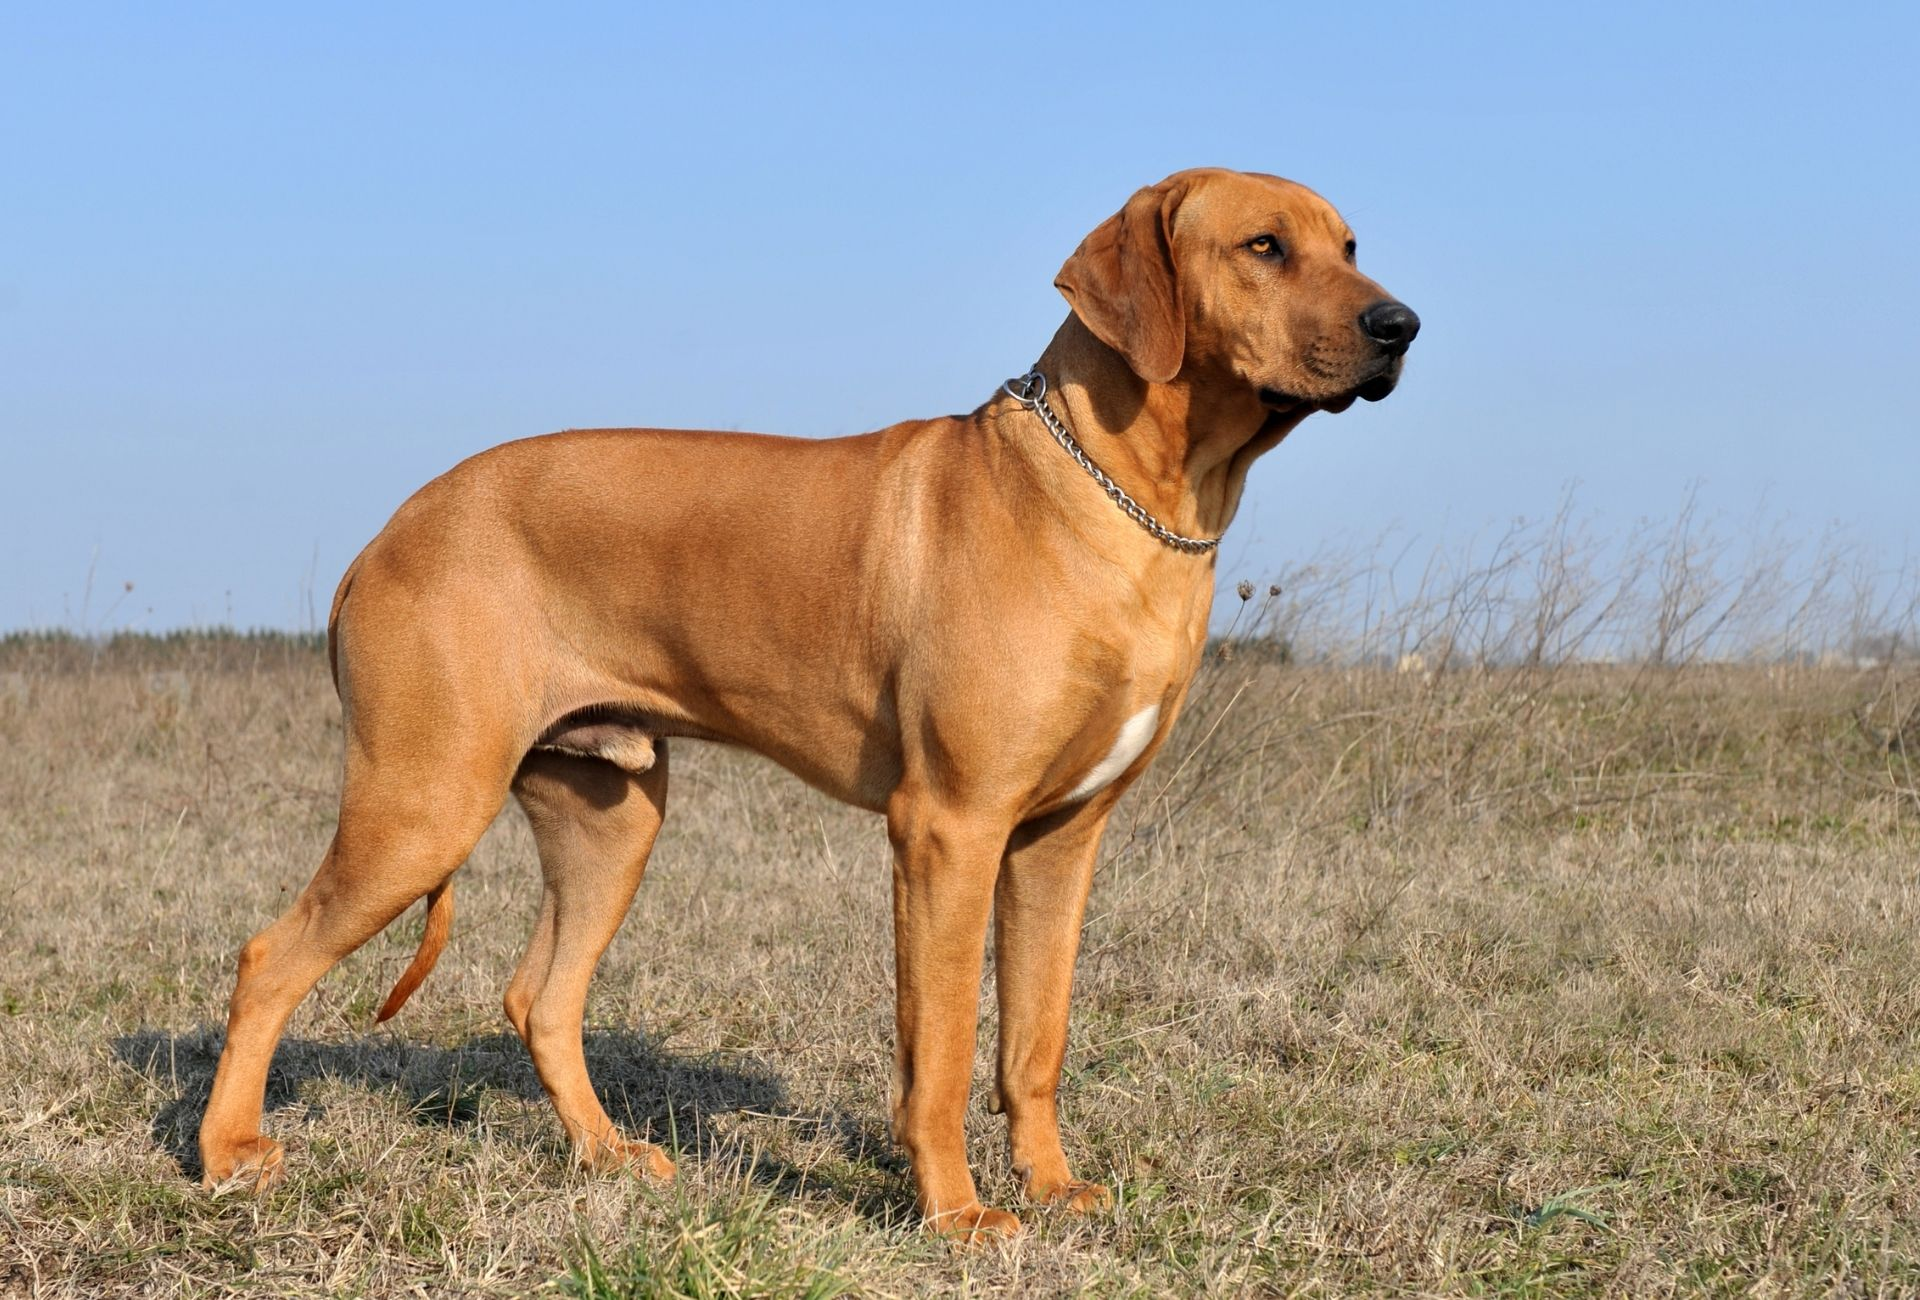 Musucular and thick-boned male Rhodesian Ridgeback stands outside on low grass under a clear blue sky.